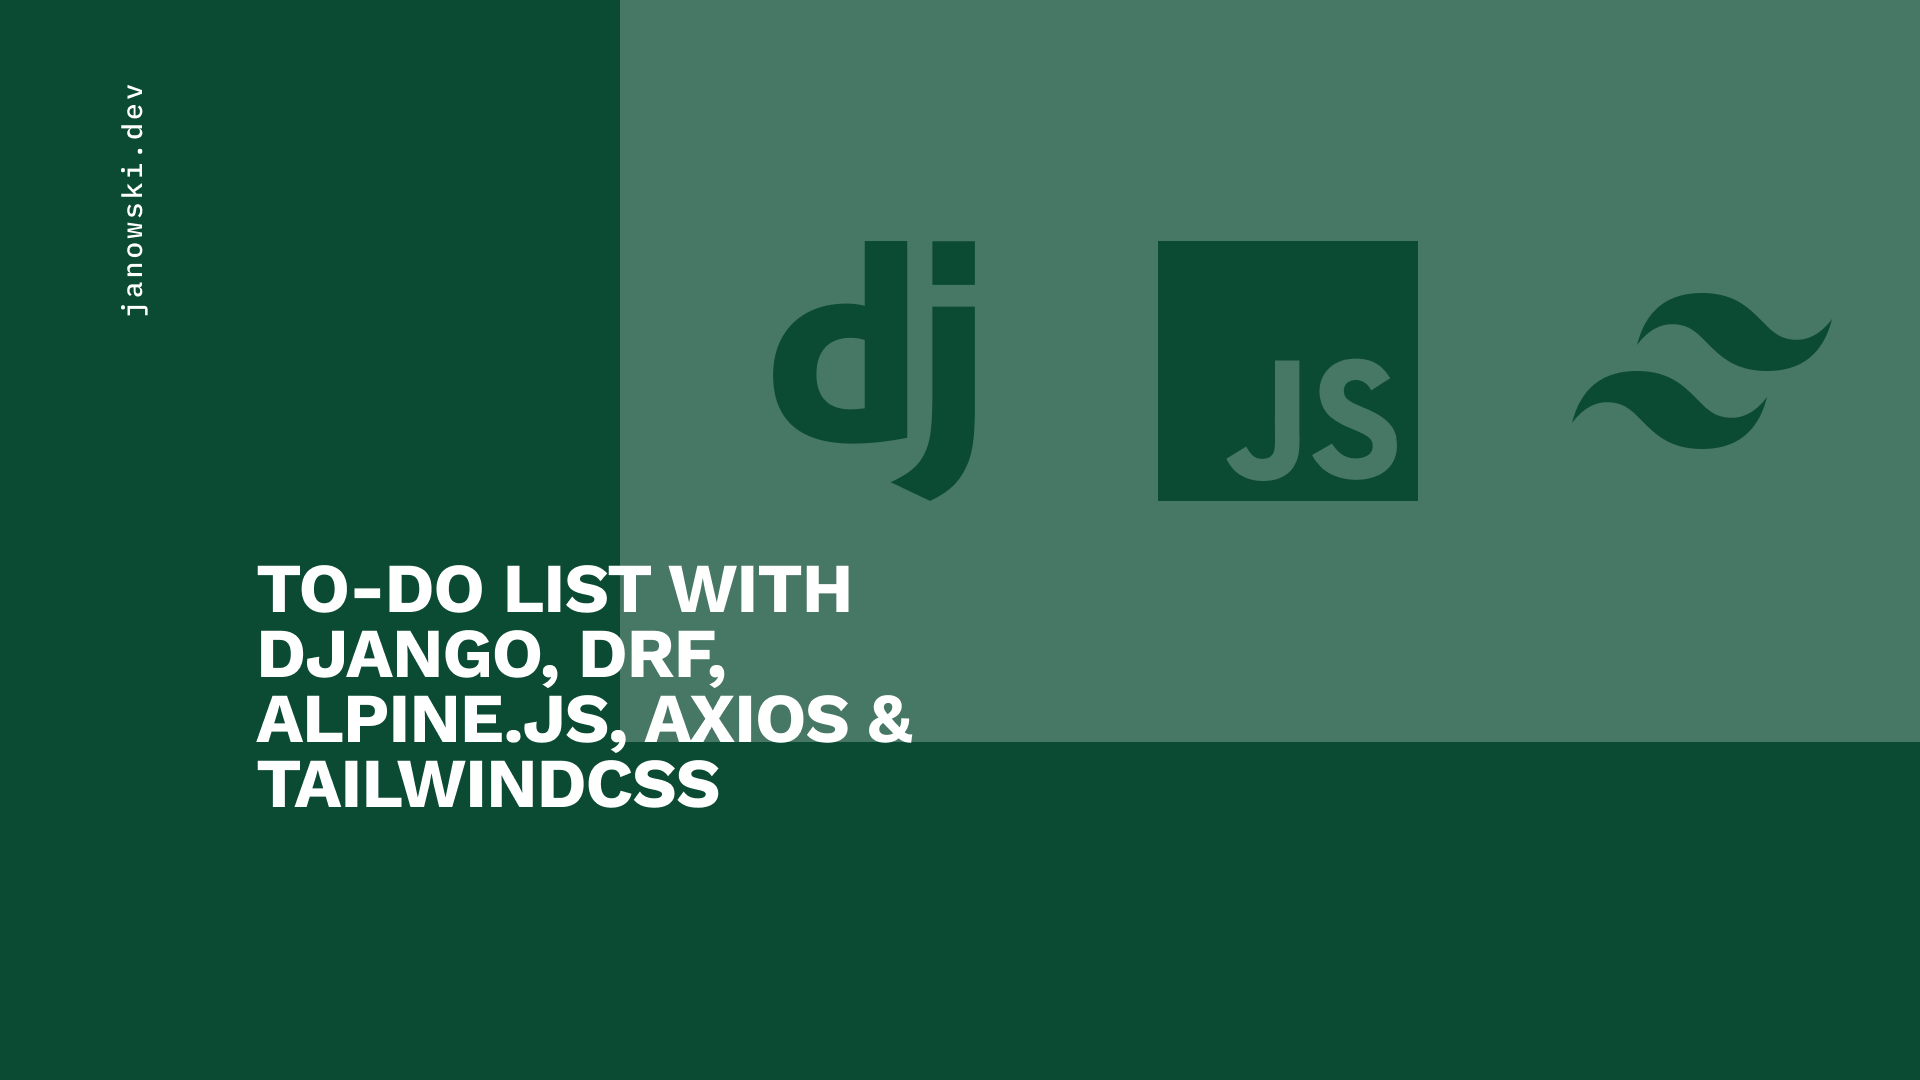 Simple To-Do List with Django, Alpine.js, TailwidCSS, and Axios